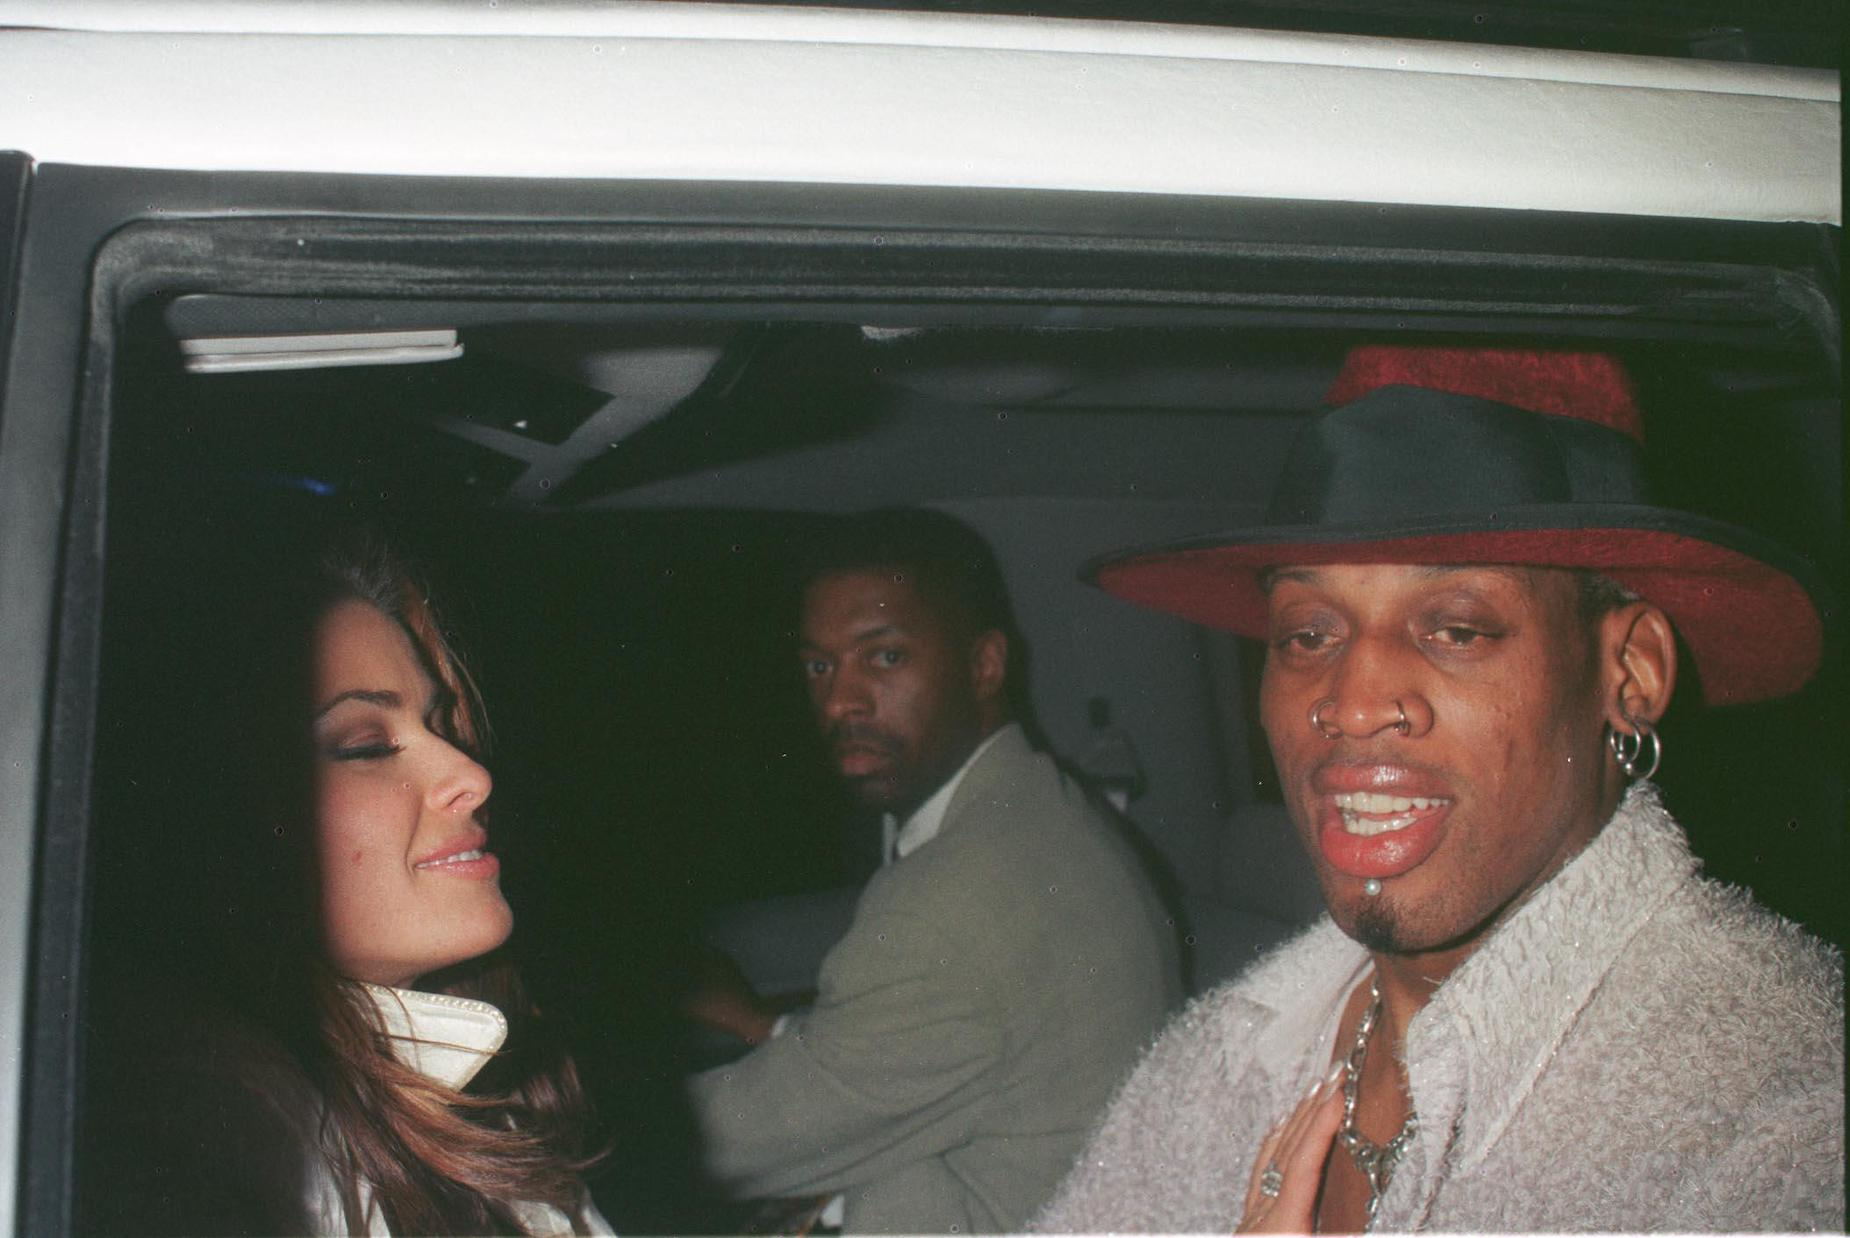 NBA player Dennis Rodman and model Carmen Electra sit in a limousine together in 1999.